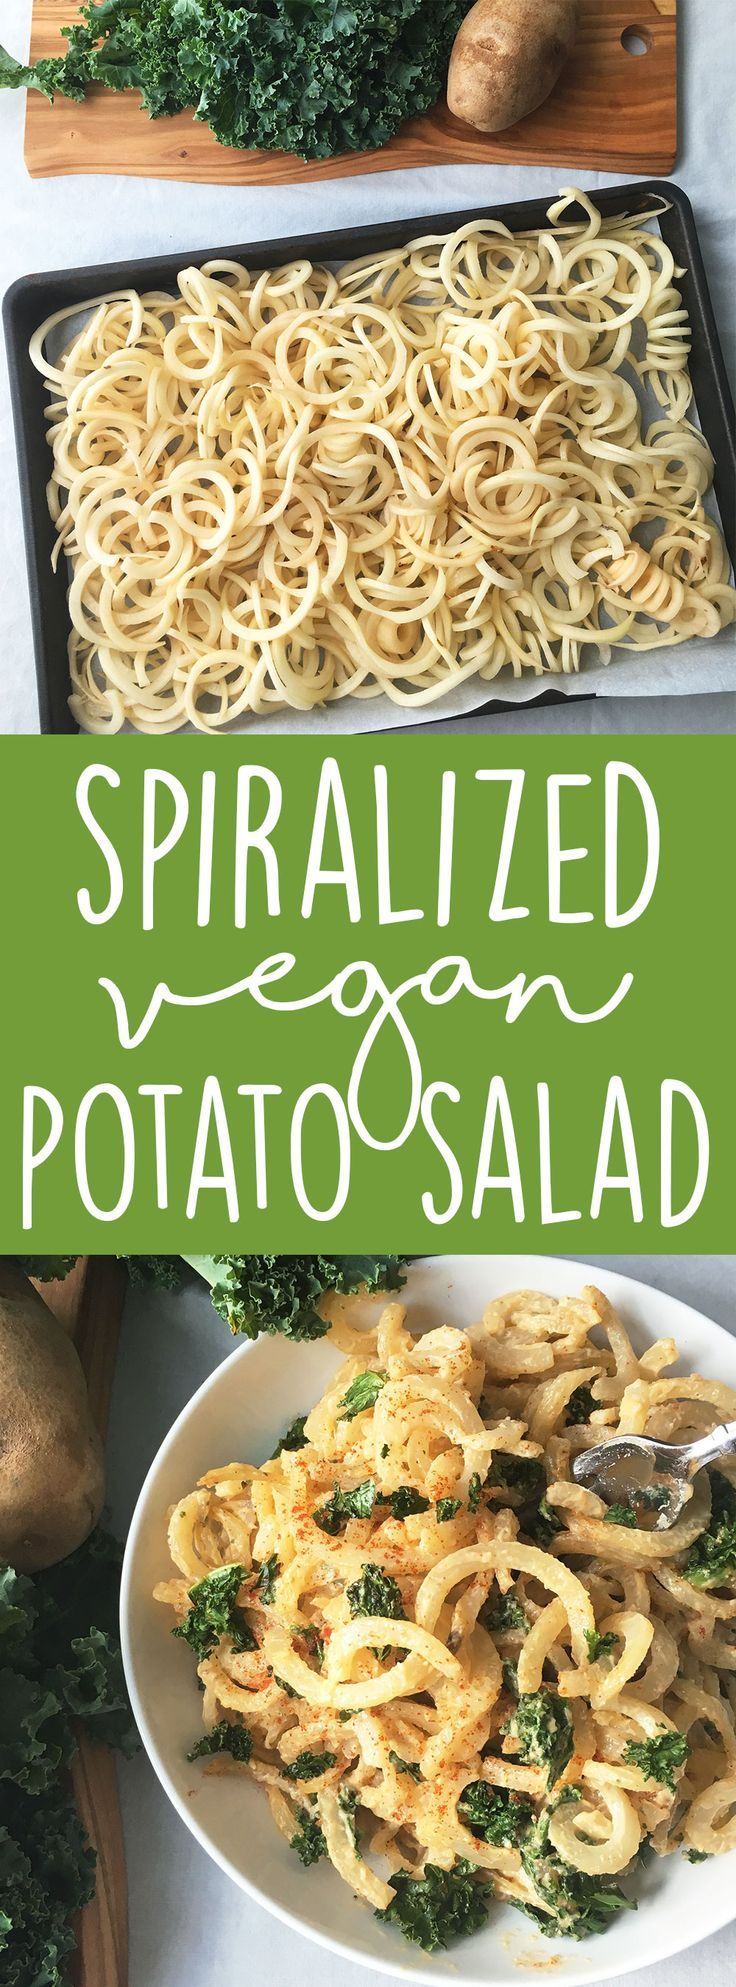 Make an impressive vegan side dish with a twist on classic potato salad! Break out your spiralizer and make this vegan spiralized potato salad with kale for your next cook out or BBQ! (Vegan Side Dish - Vegan BBQ Recipe)